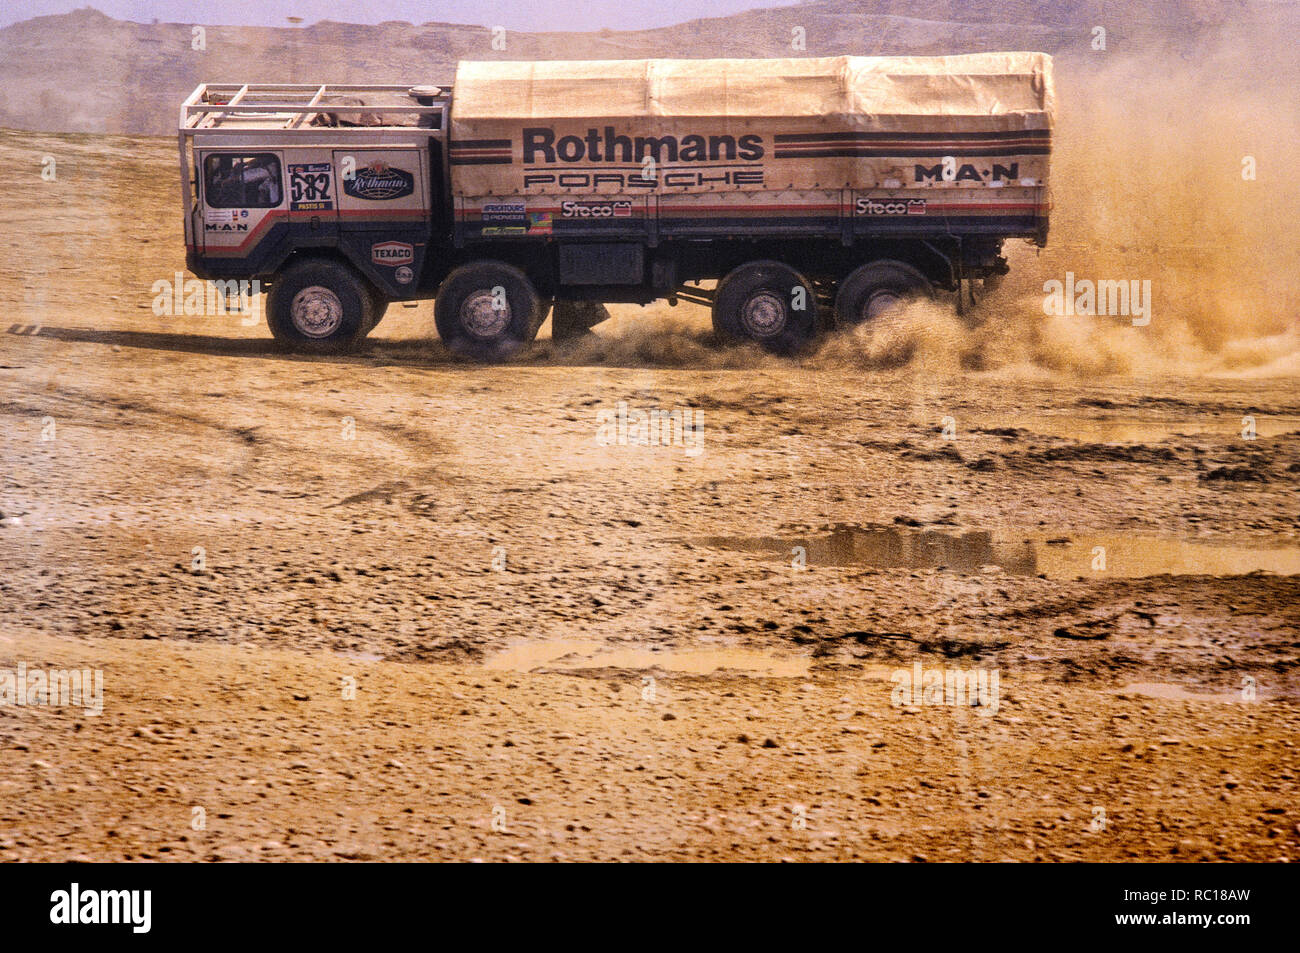 1984 M.A.N Dakar Rally Rothmans Porsche Rally raid support truck. Stock Photo